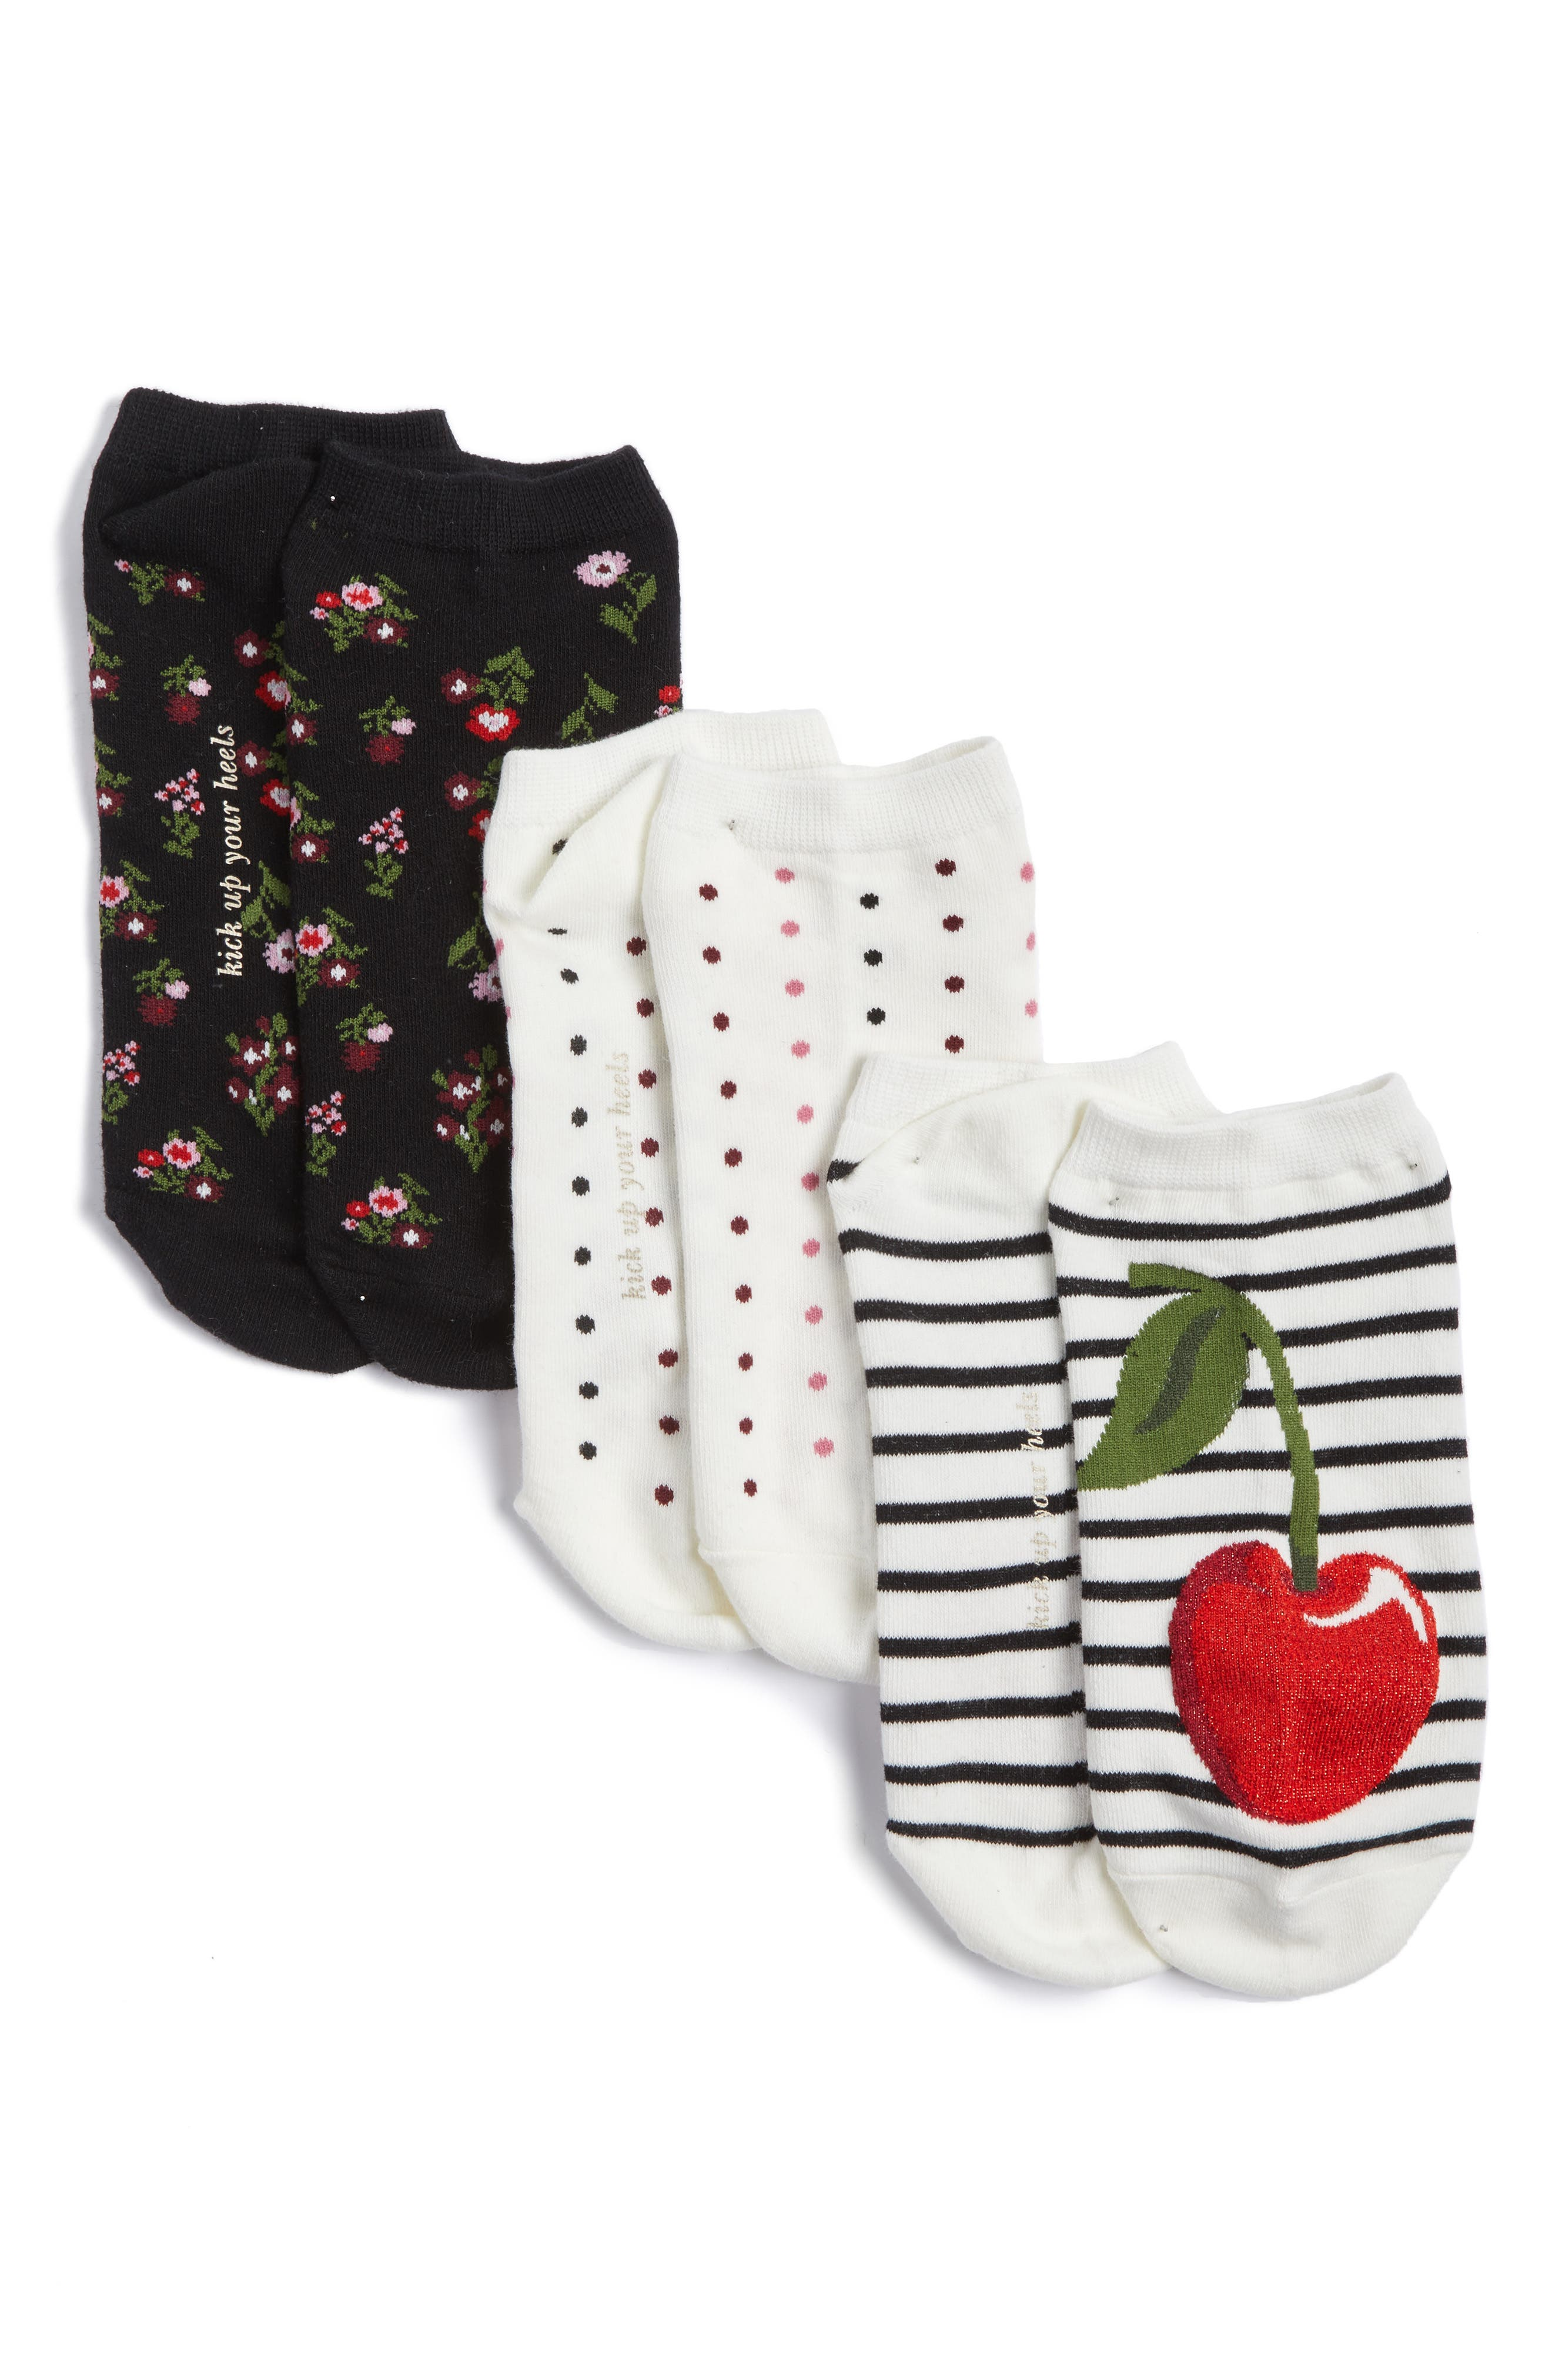 kate spade new york 3-pack no-show socks